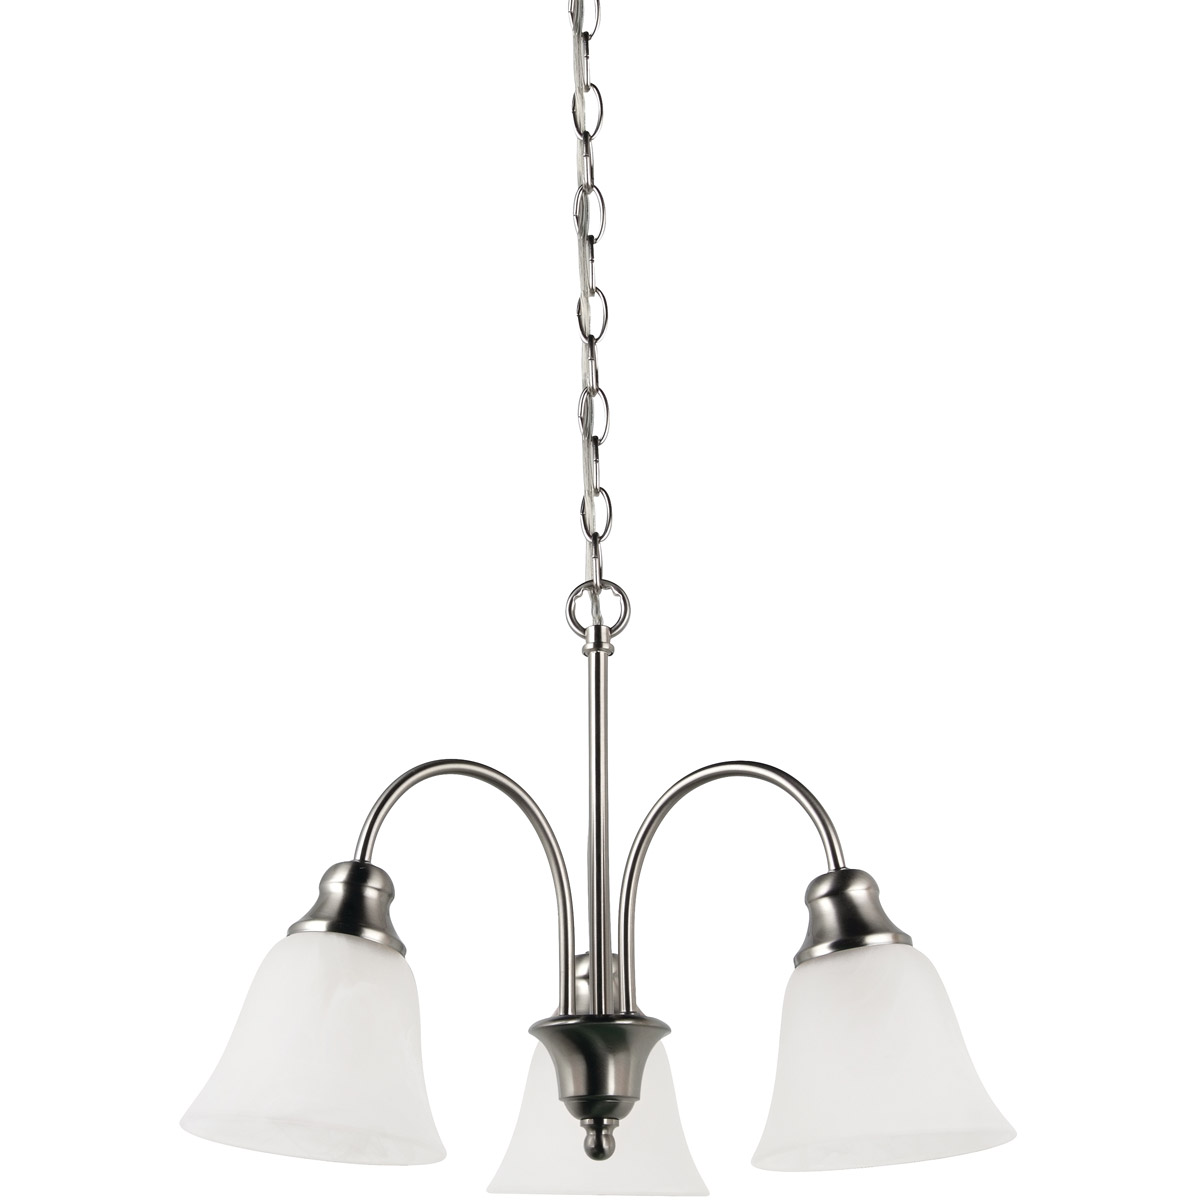 Sea Gull 35949-962 Windgate 3 Light 20 inch Brushed Nickel Chandelier Ceiling Light in Standard photo